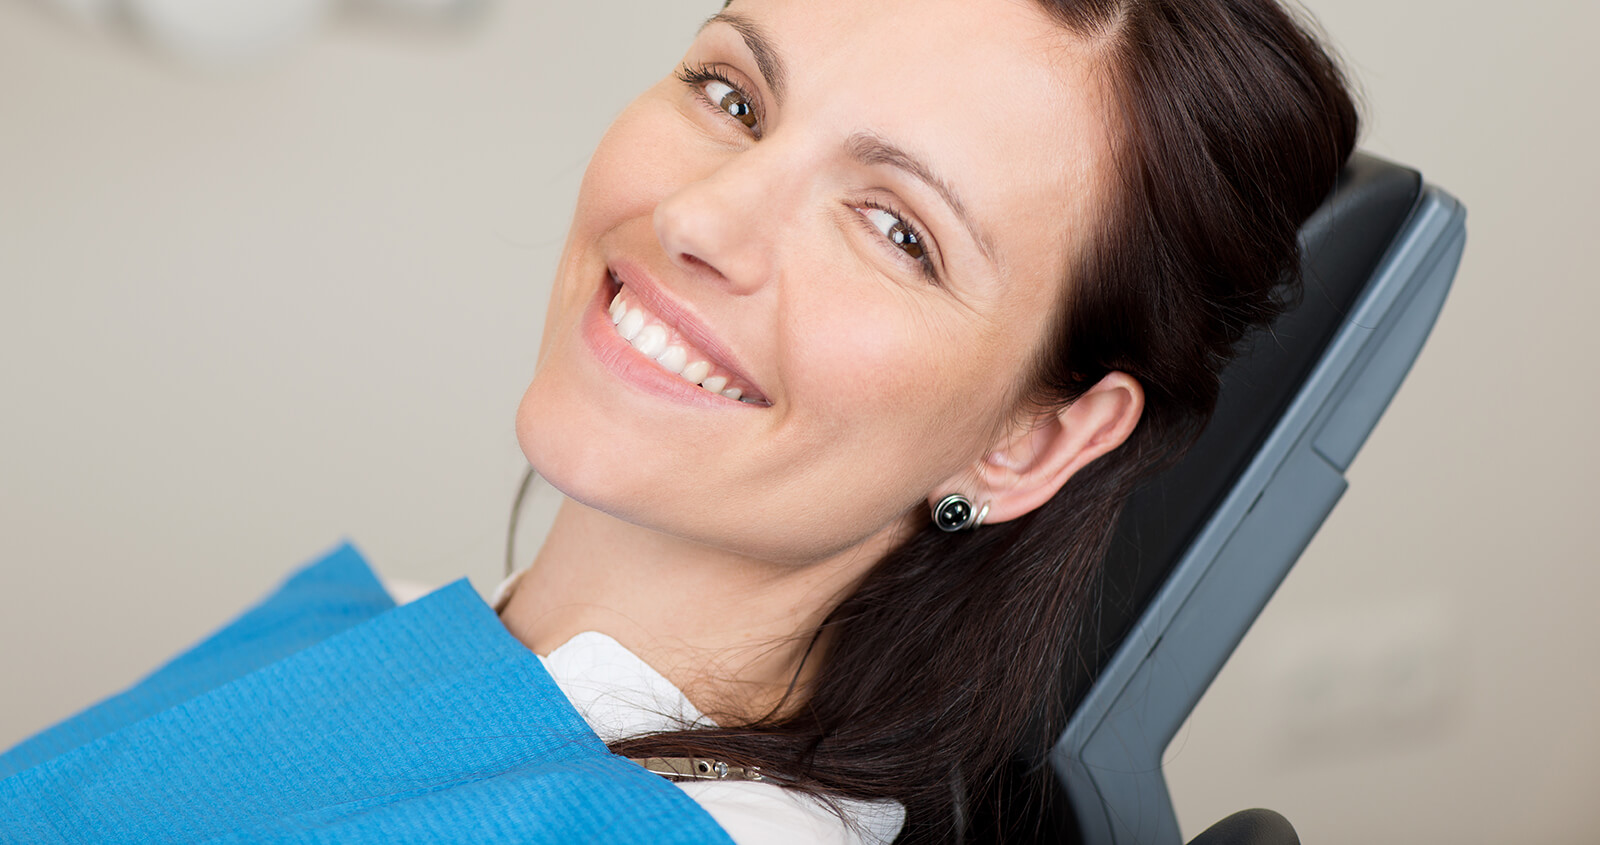 Dentist in Highland, MI Offers TMJ Pain Relief for Commonly Misdiagnosed Symptoms of TMJ Disorder